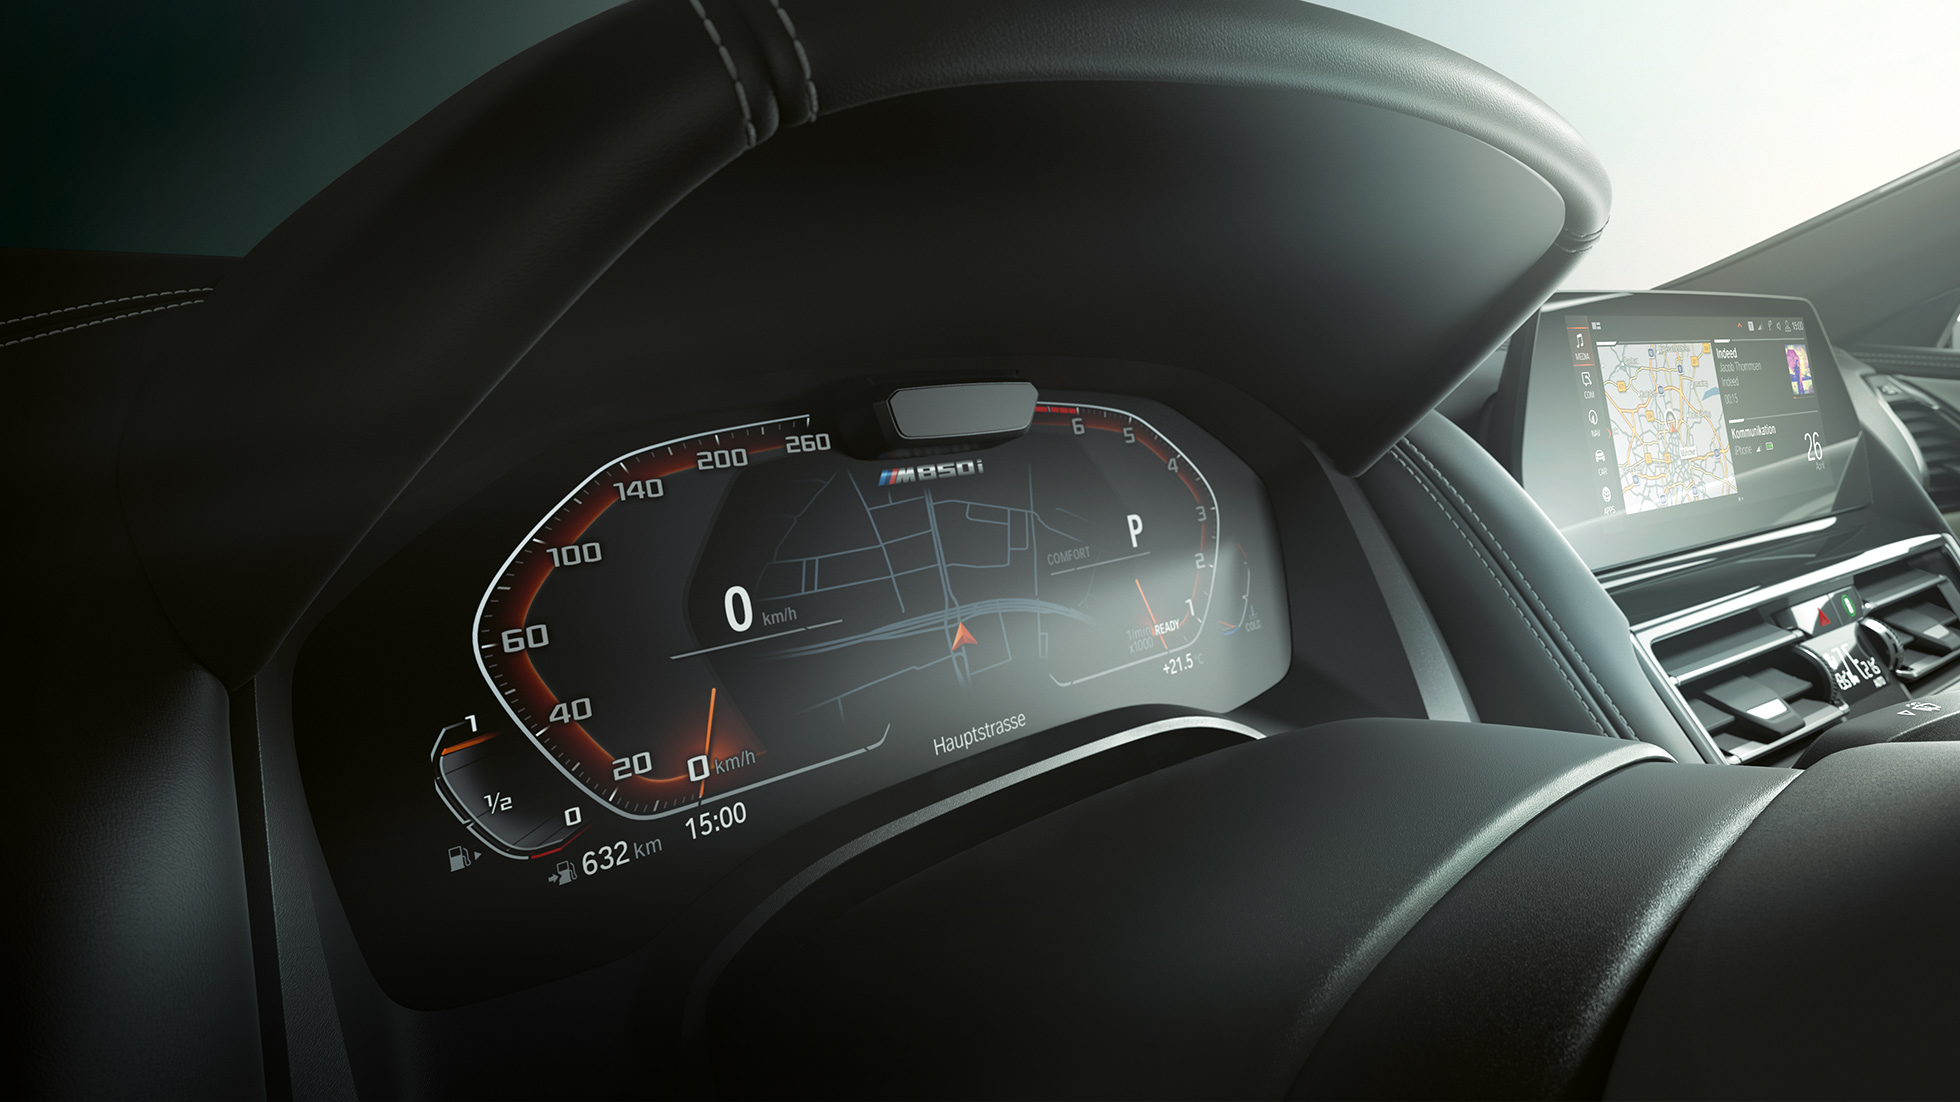 BMW M850i xDrive, instrument cluster, Driving Assistant Plus.